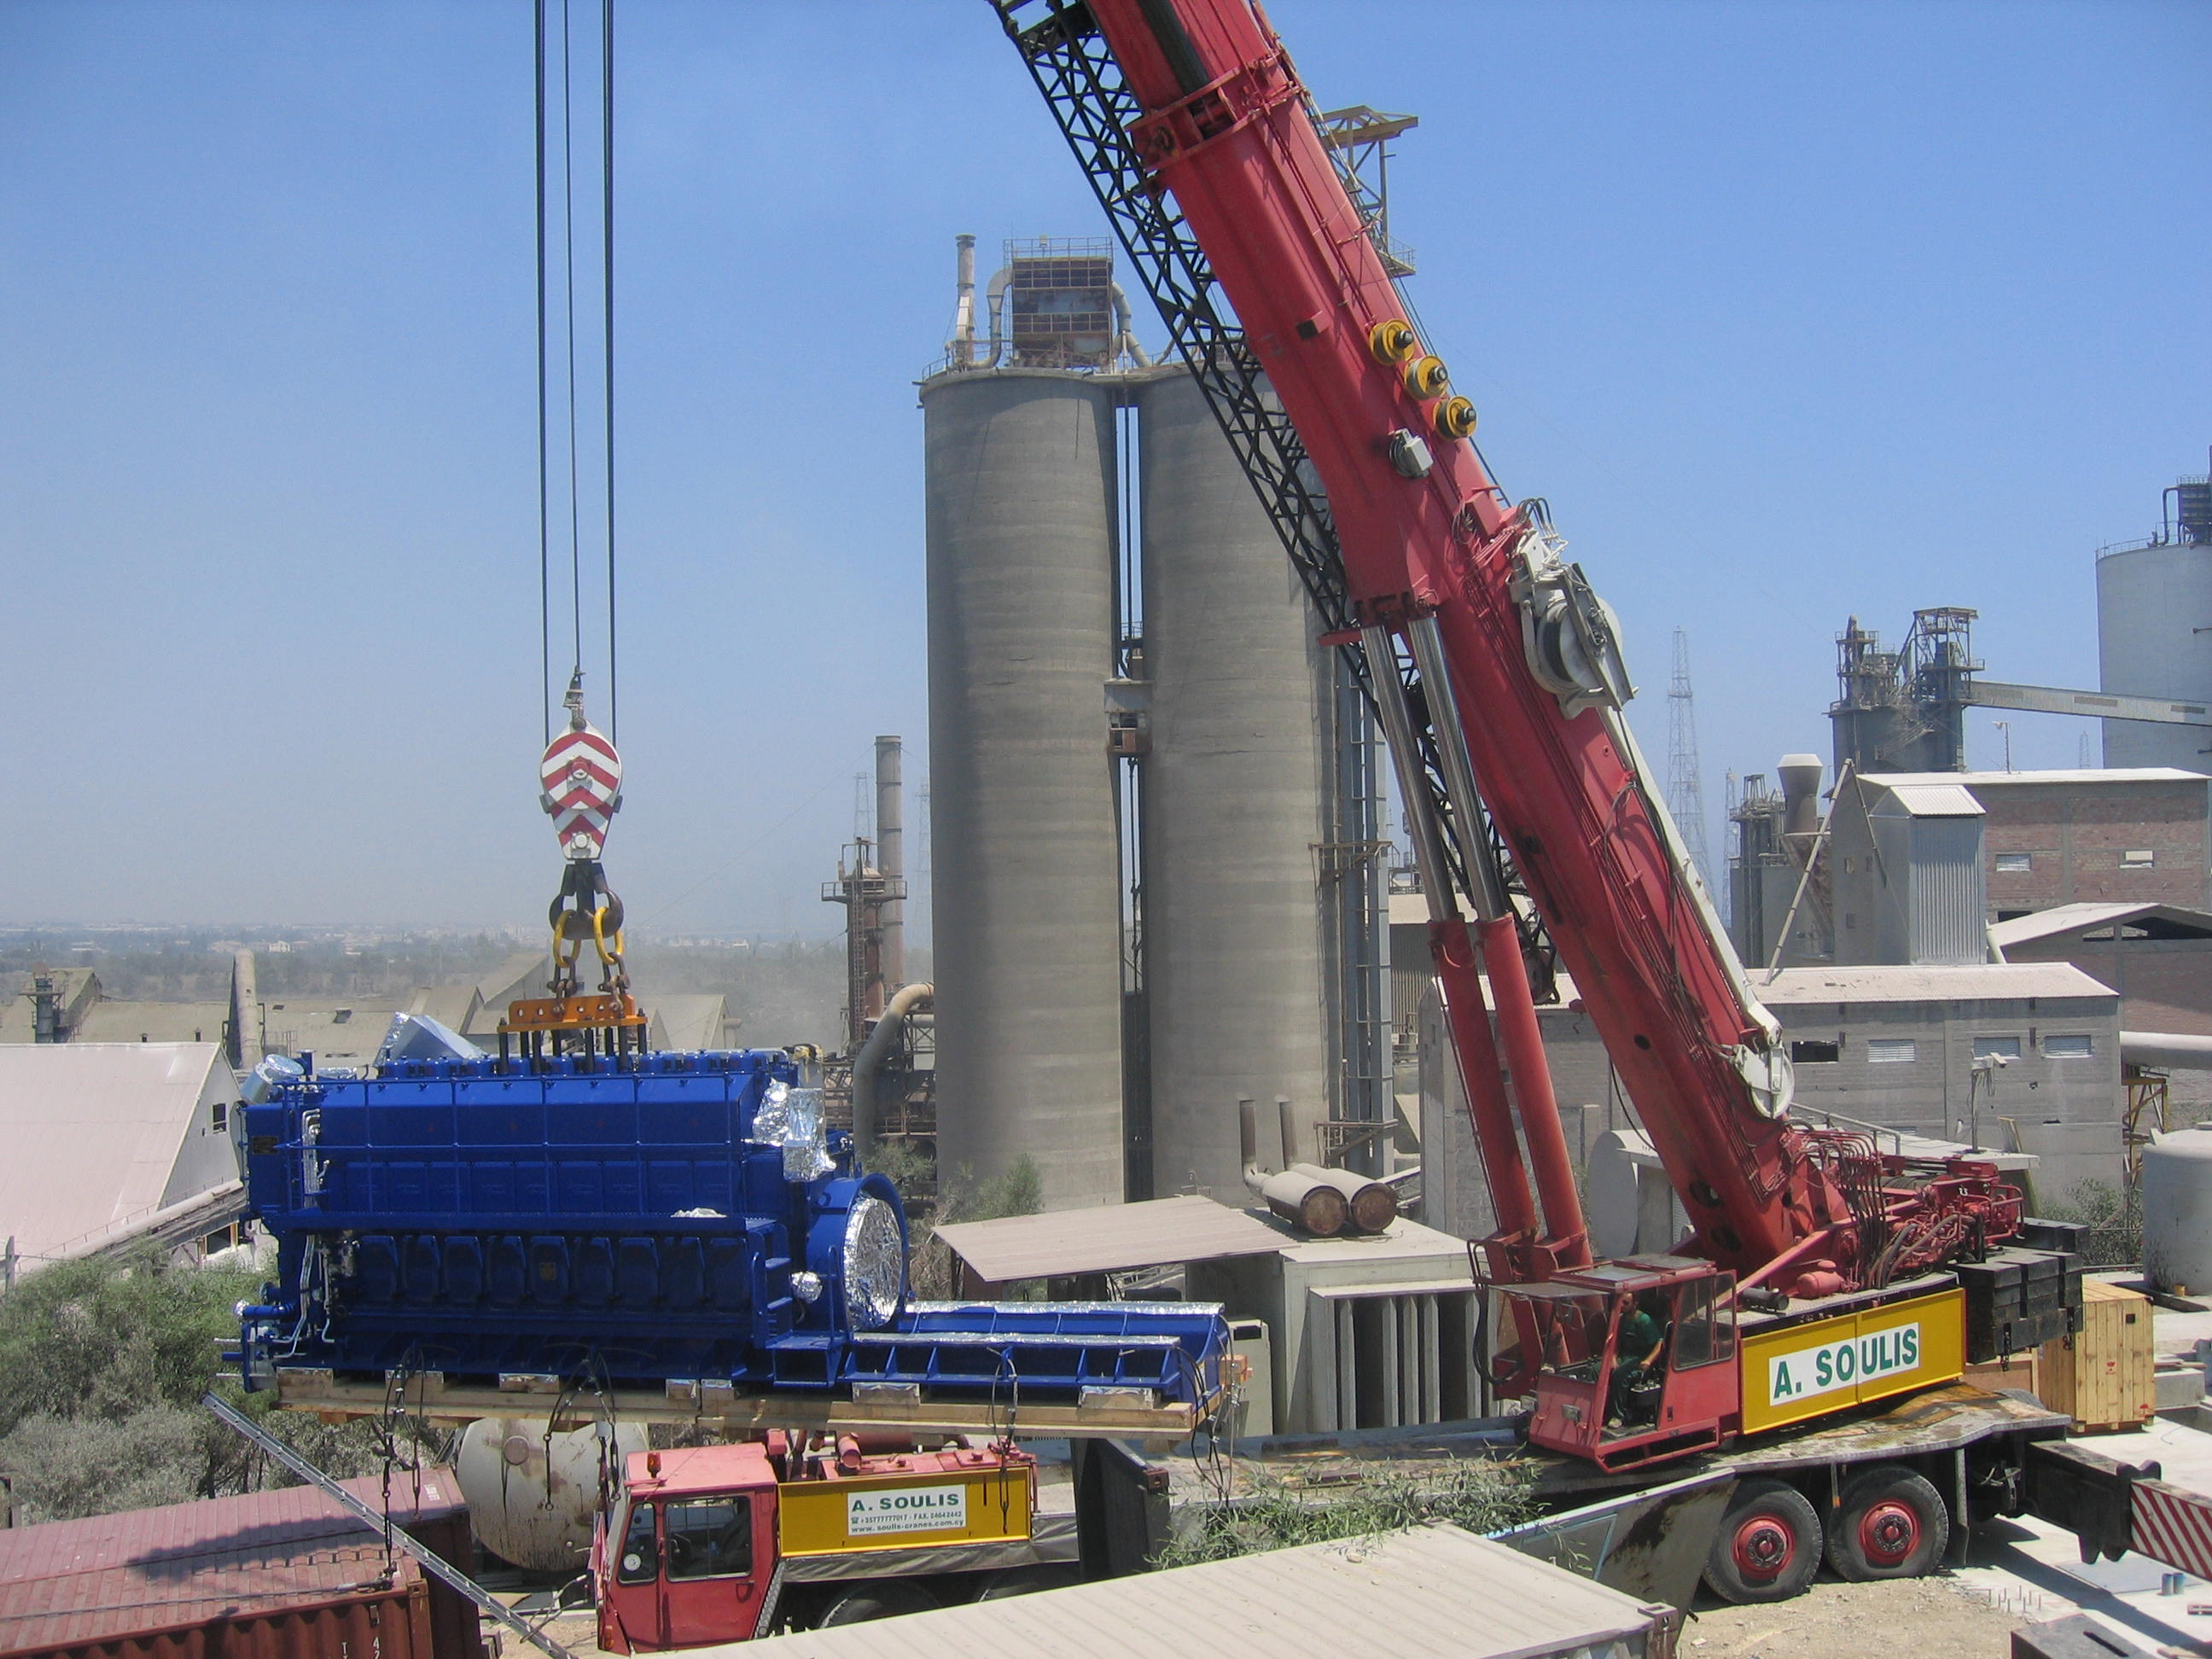 Lifting of Hyundai Engines for VCW power plant